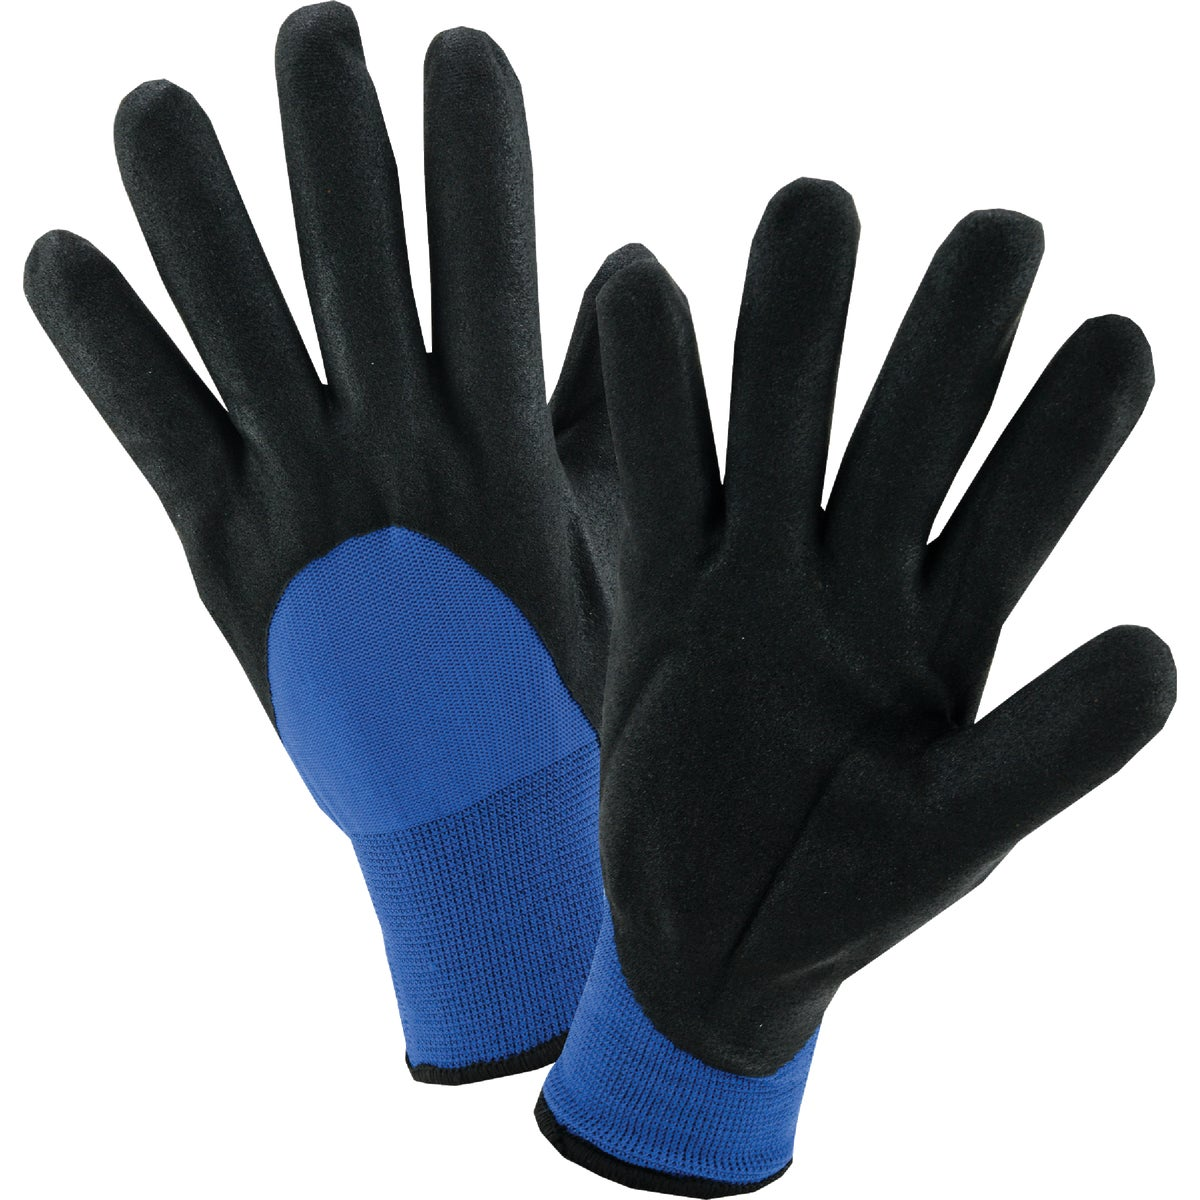 LG WINTER LINED NITRILE